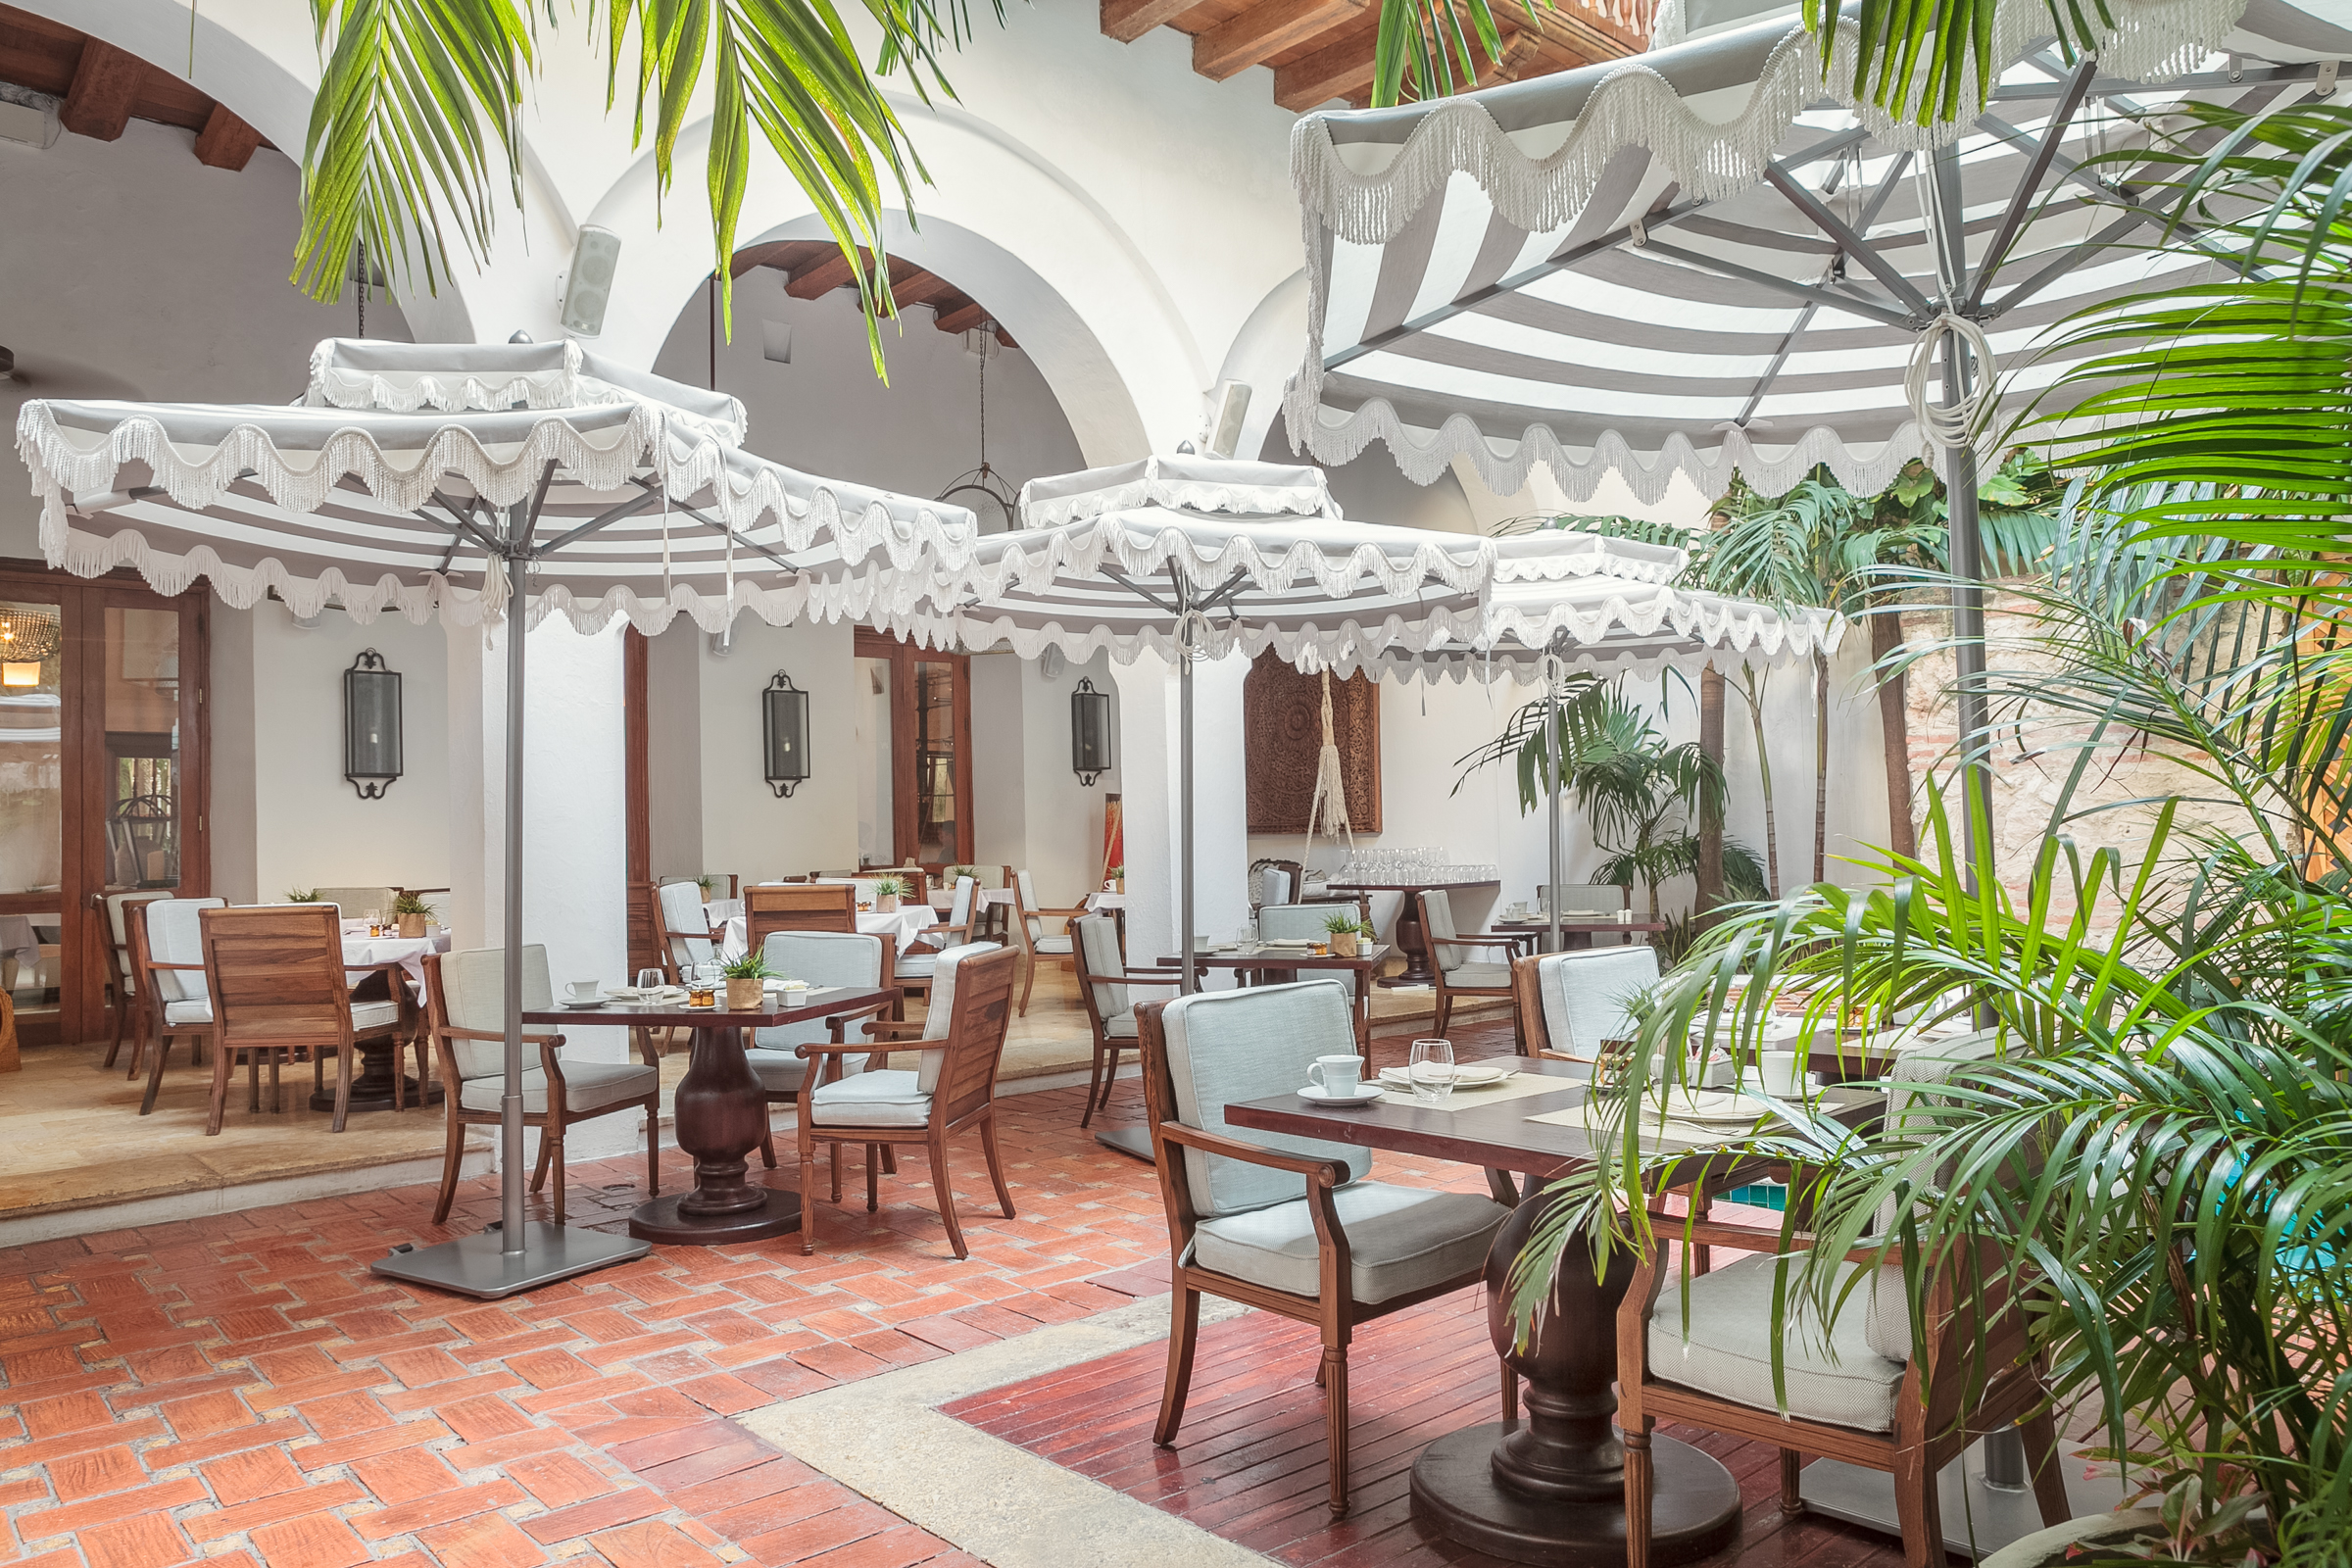 Al Fresco Dining at Alma ( photo courtesy of Hotel Casa San Agustin)